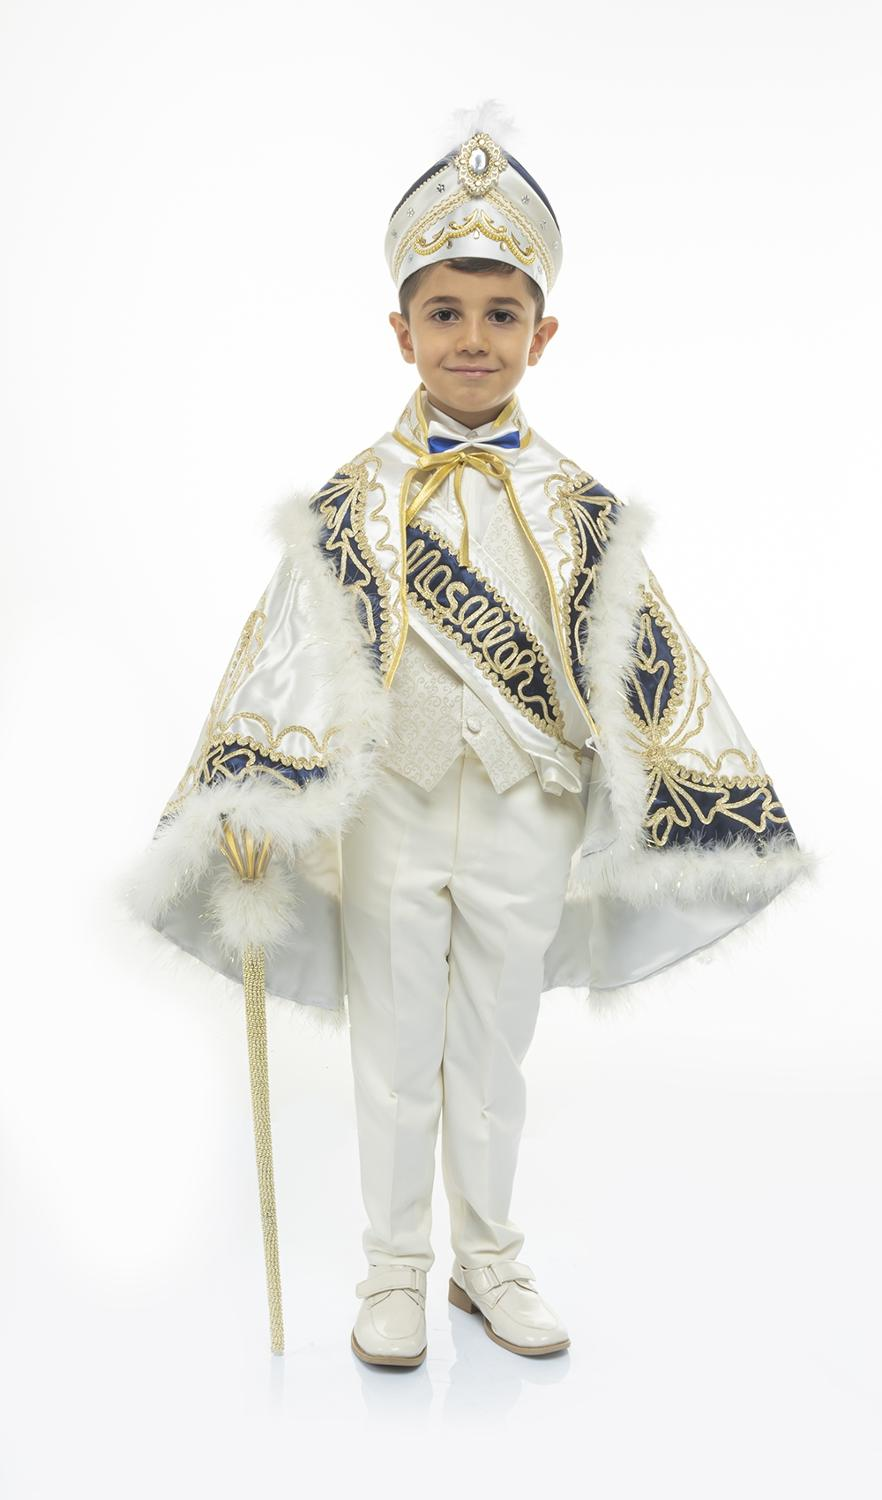 Sultan Cape Prince Sunnet Suit Kid Dress 1-14 Age Birthday Party Event Costume Child Muslim Islamic Turkish Tradition Special